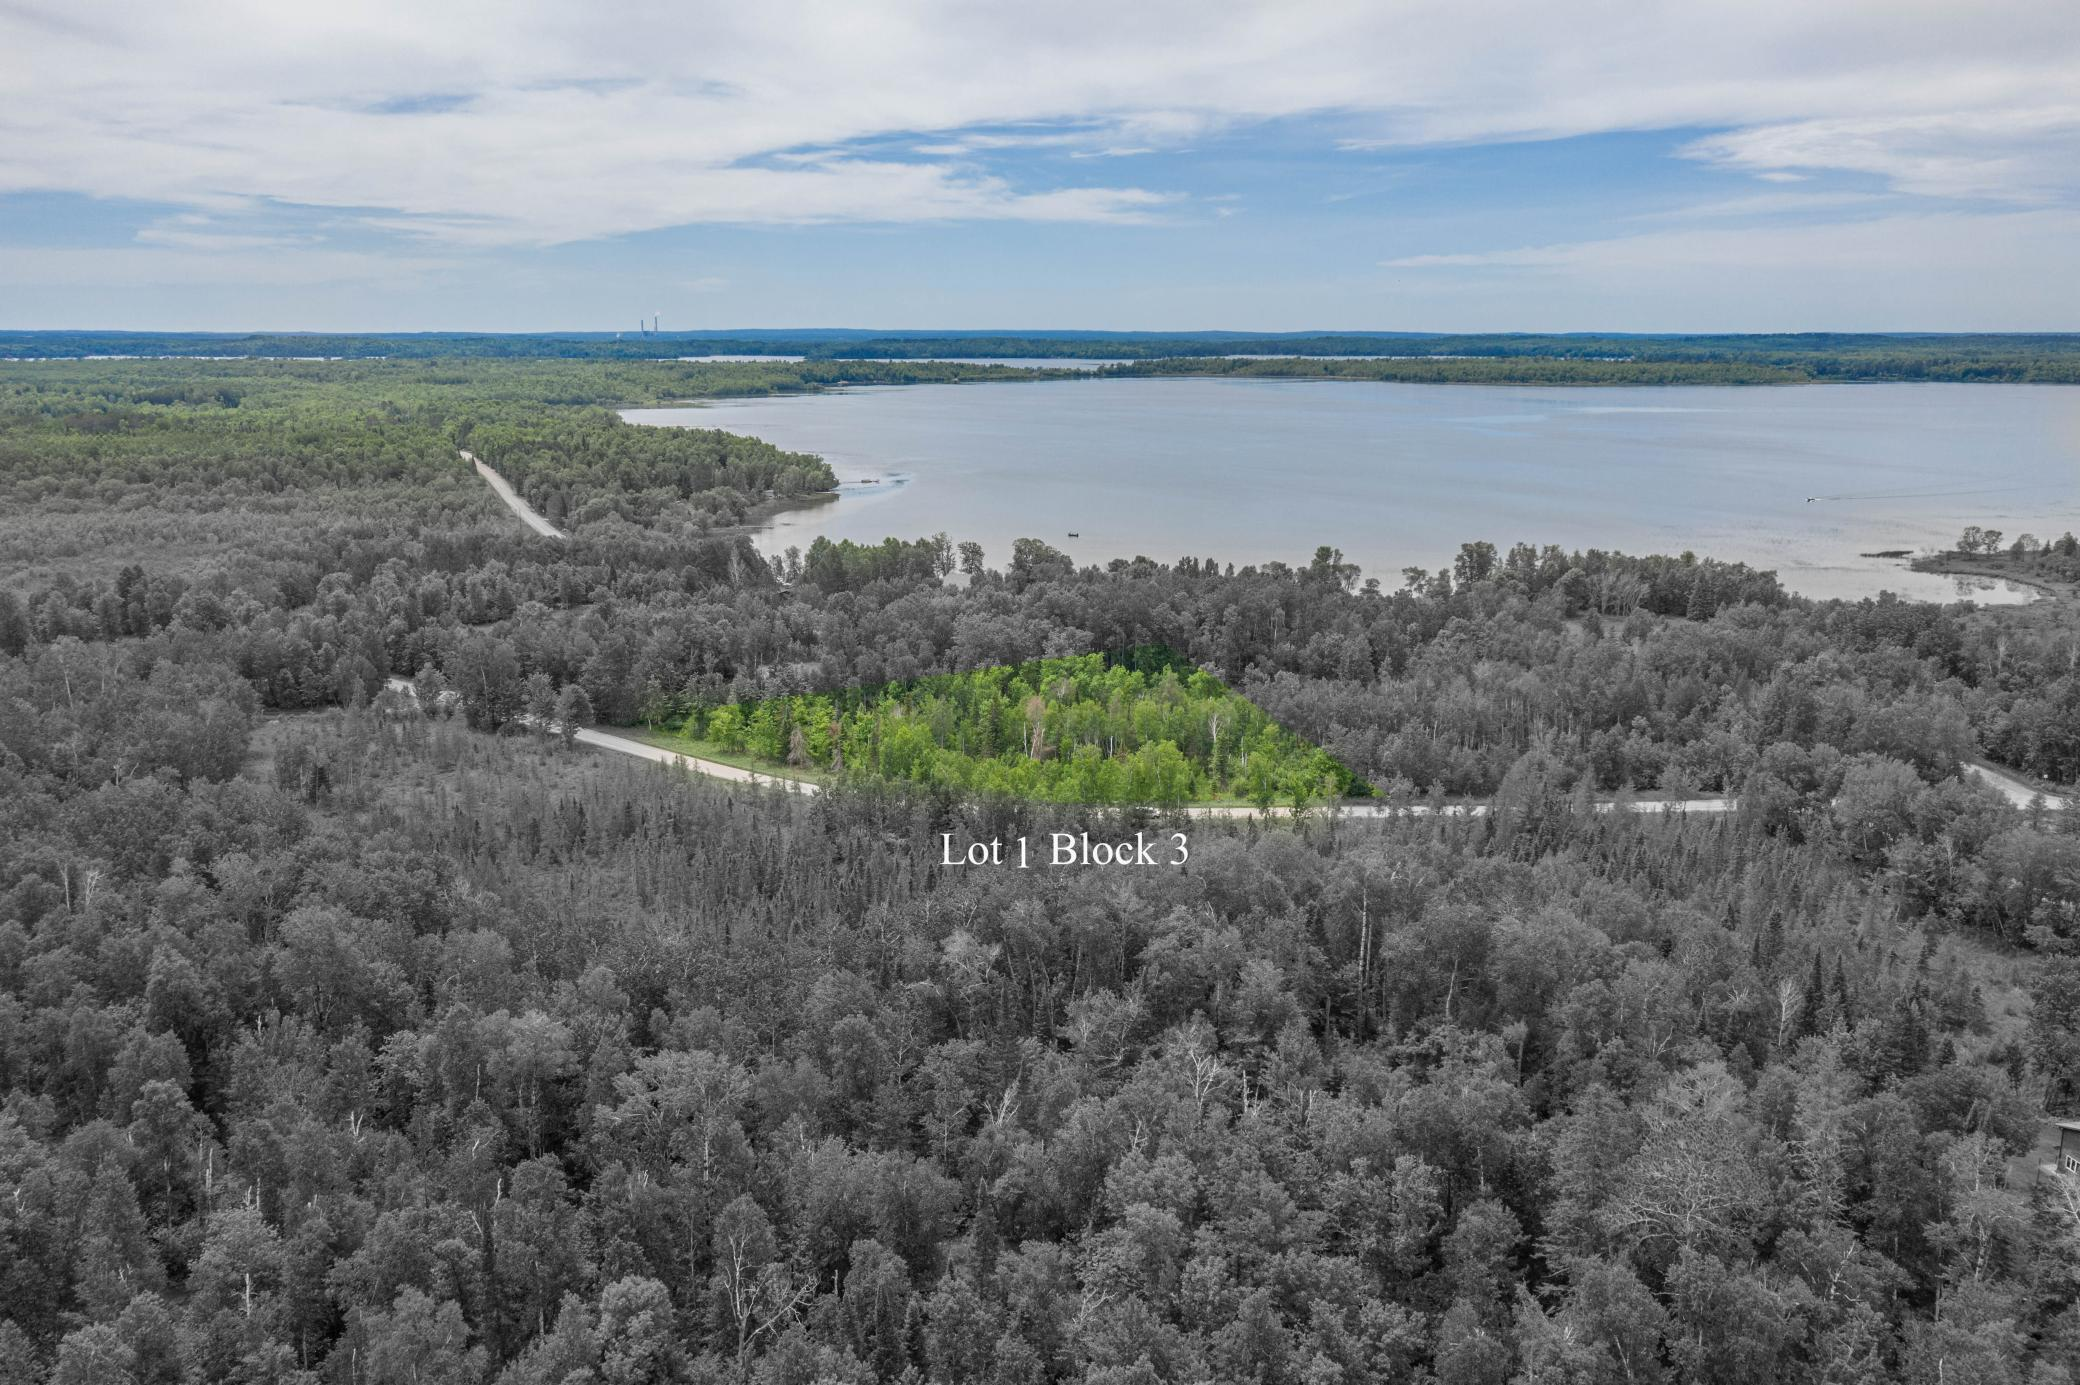 The Land is a plat with 15 available lots in a prime location just north of Deer, Moose and Little Moose lakes with several of the lots backing onto the Chippewa National Forest. The lots all have access to utilities including electric and Paul Bunyan high speed internet. This lot offers nearby access to miles of public forest, trails and the Suomi Recreation Area. Build your new home, cabin or use as a recreation lot for year round outdoor adventure.